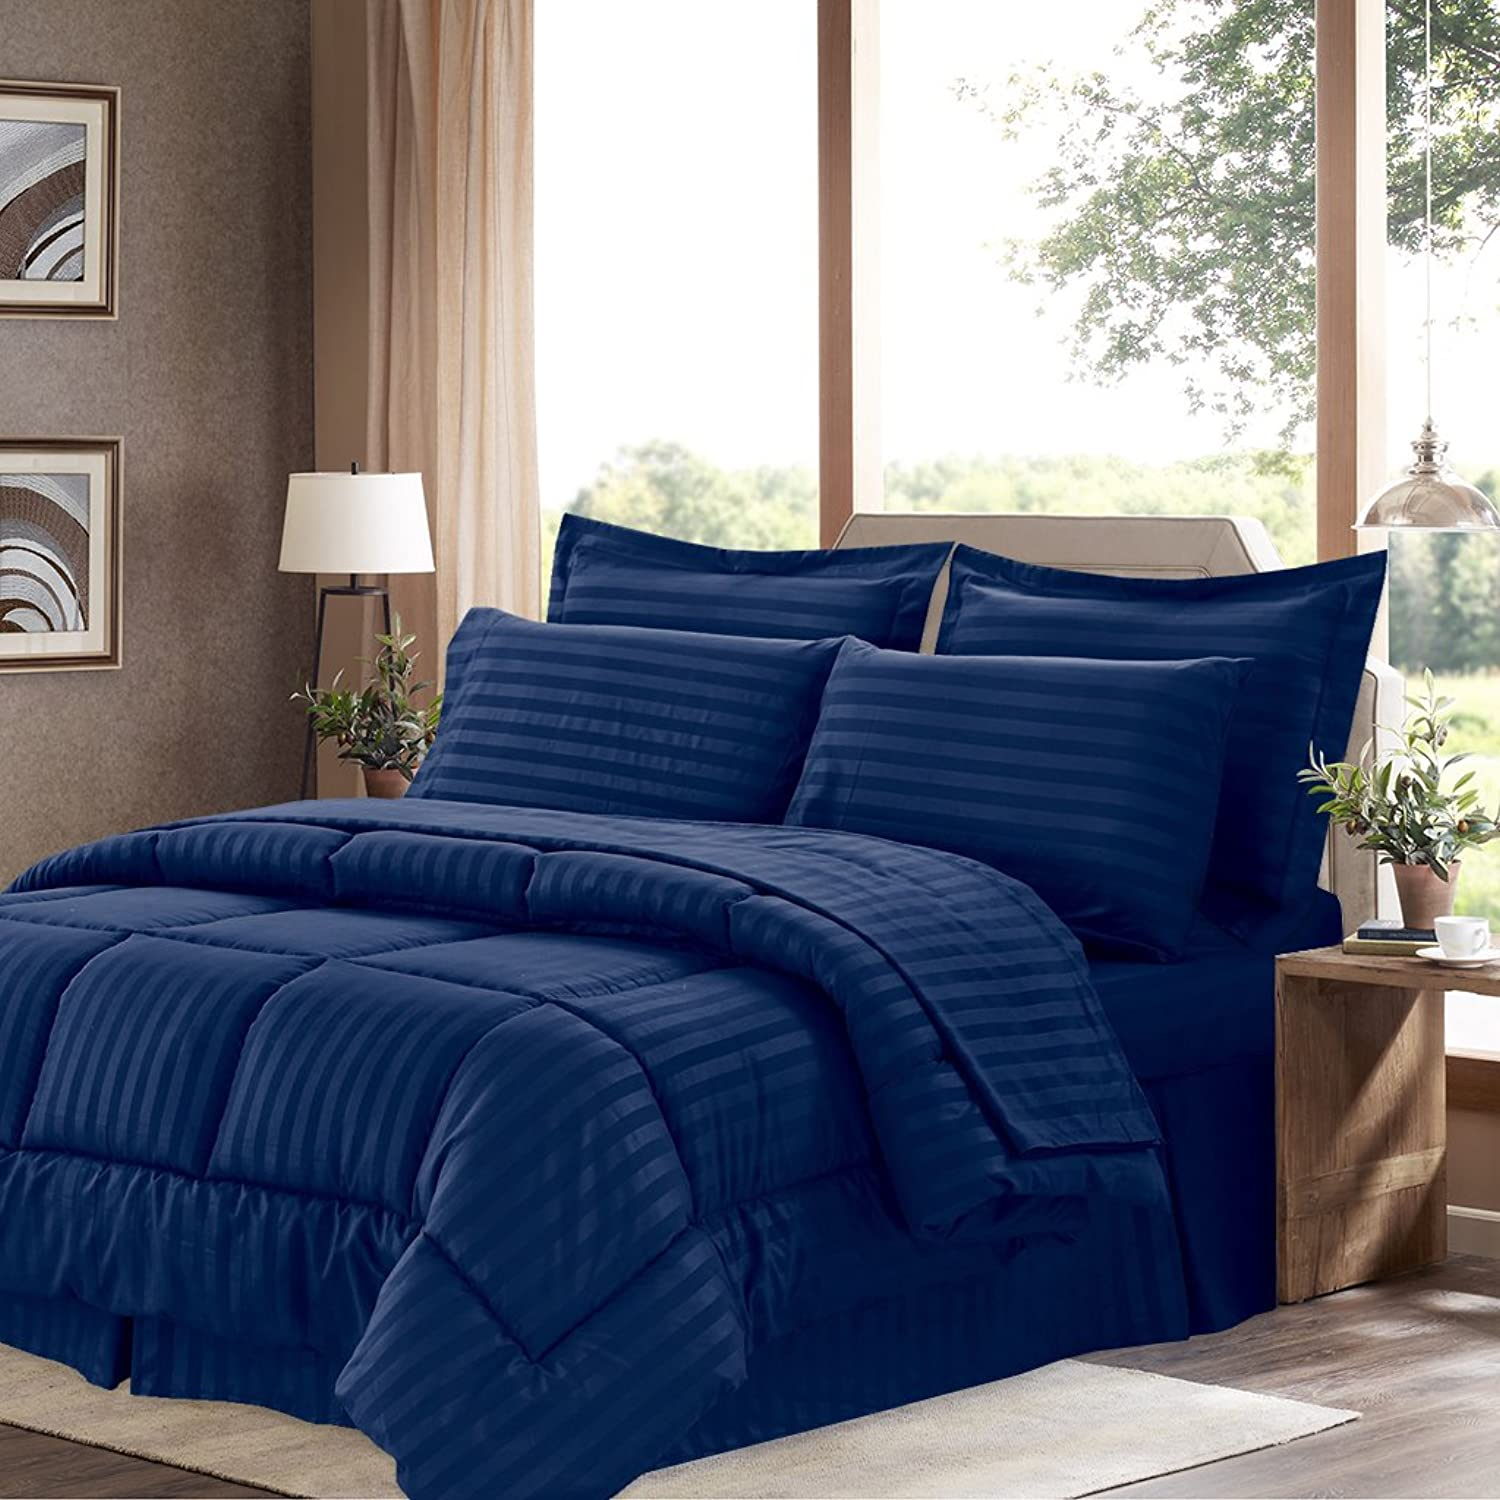 Sweet Home Collection 6 Piece Bed in a Bag with Dobby Stripe Comforter, Sheet Skirt, and Sham Set, Twin, Navy, 6